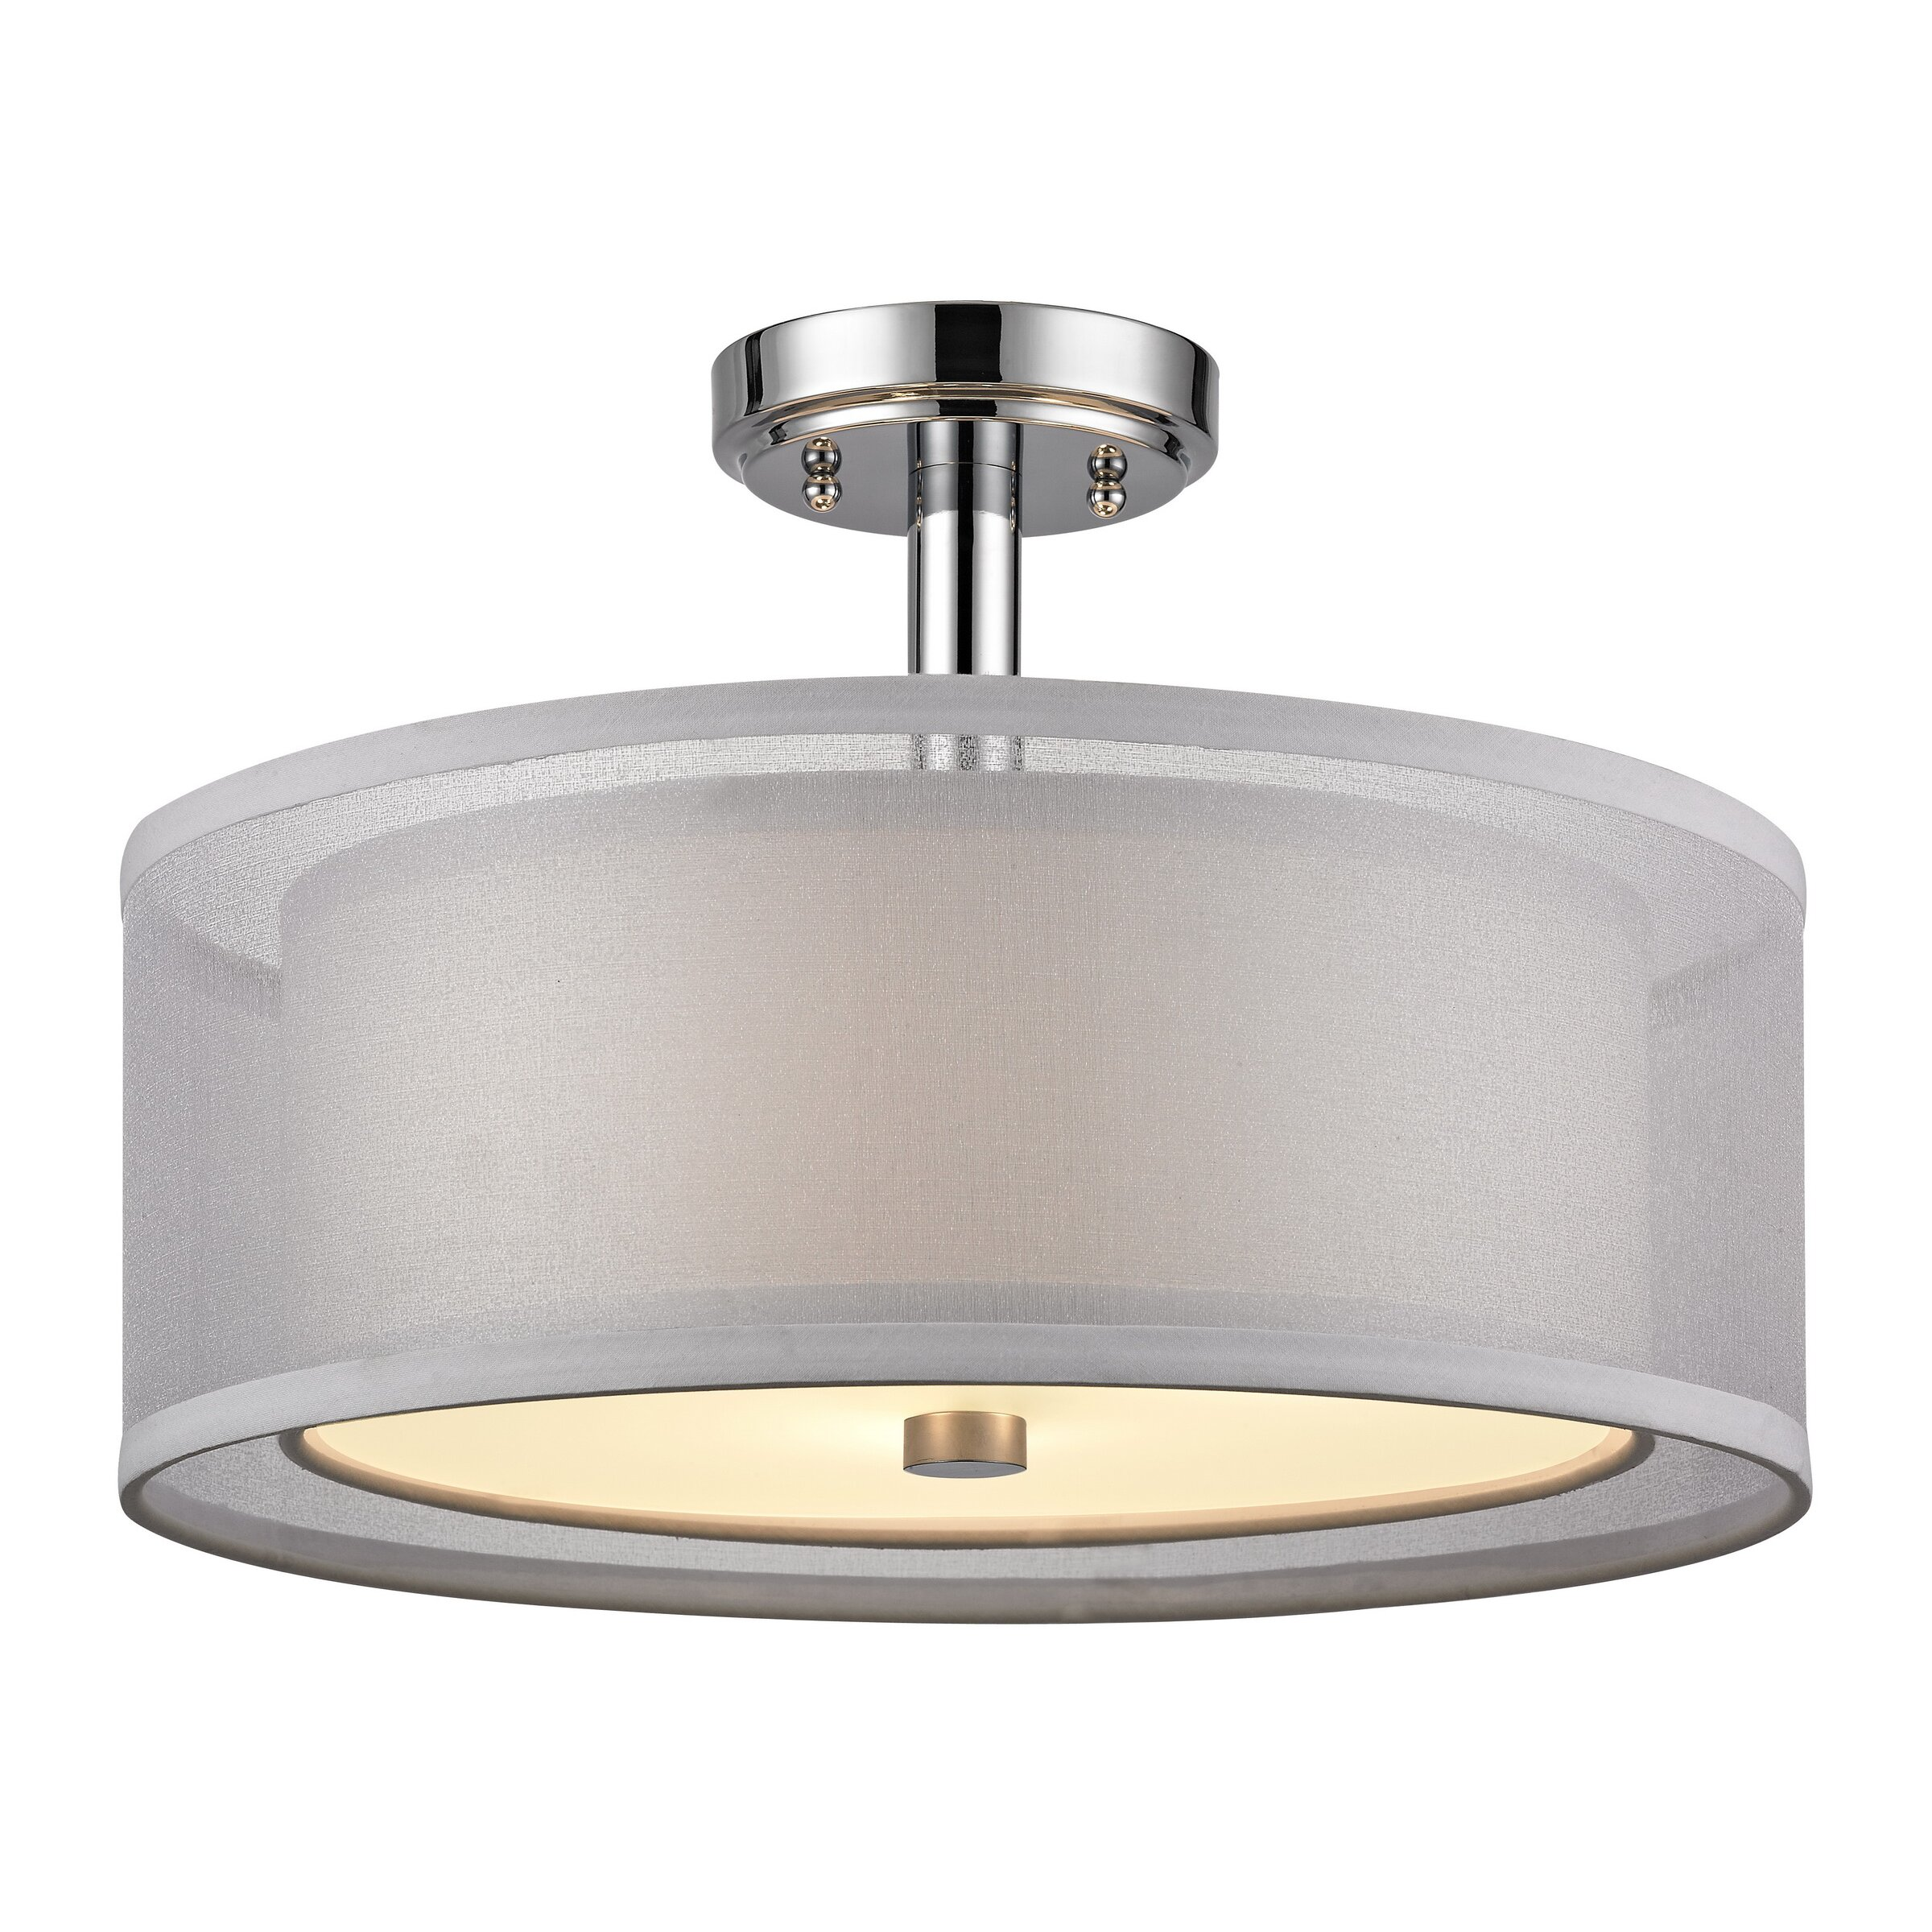 Dolan Designs Recesso Double Organza 3 Light Semi Flush Mount Reviews